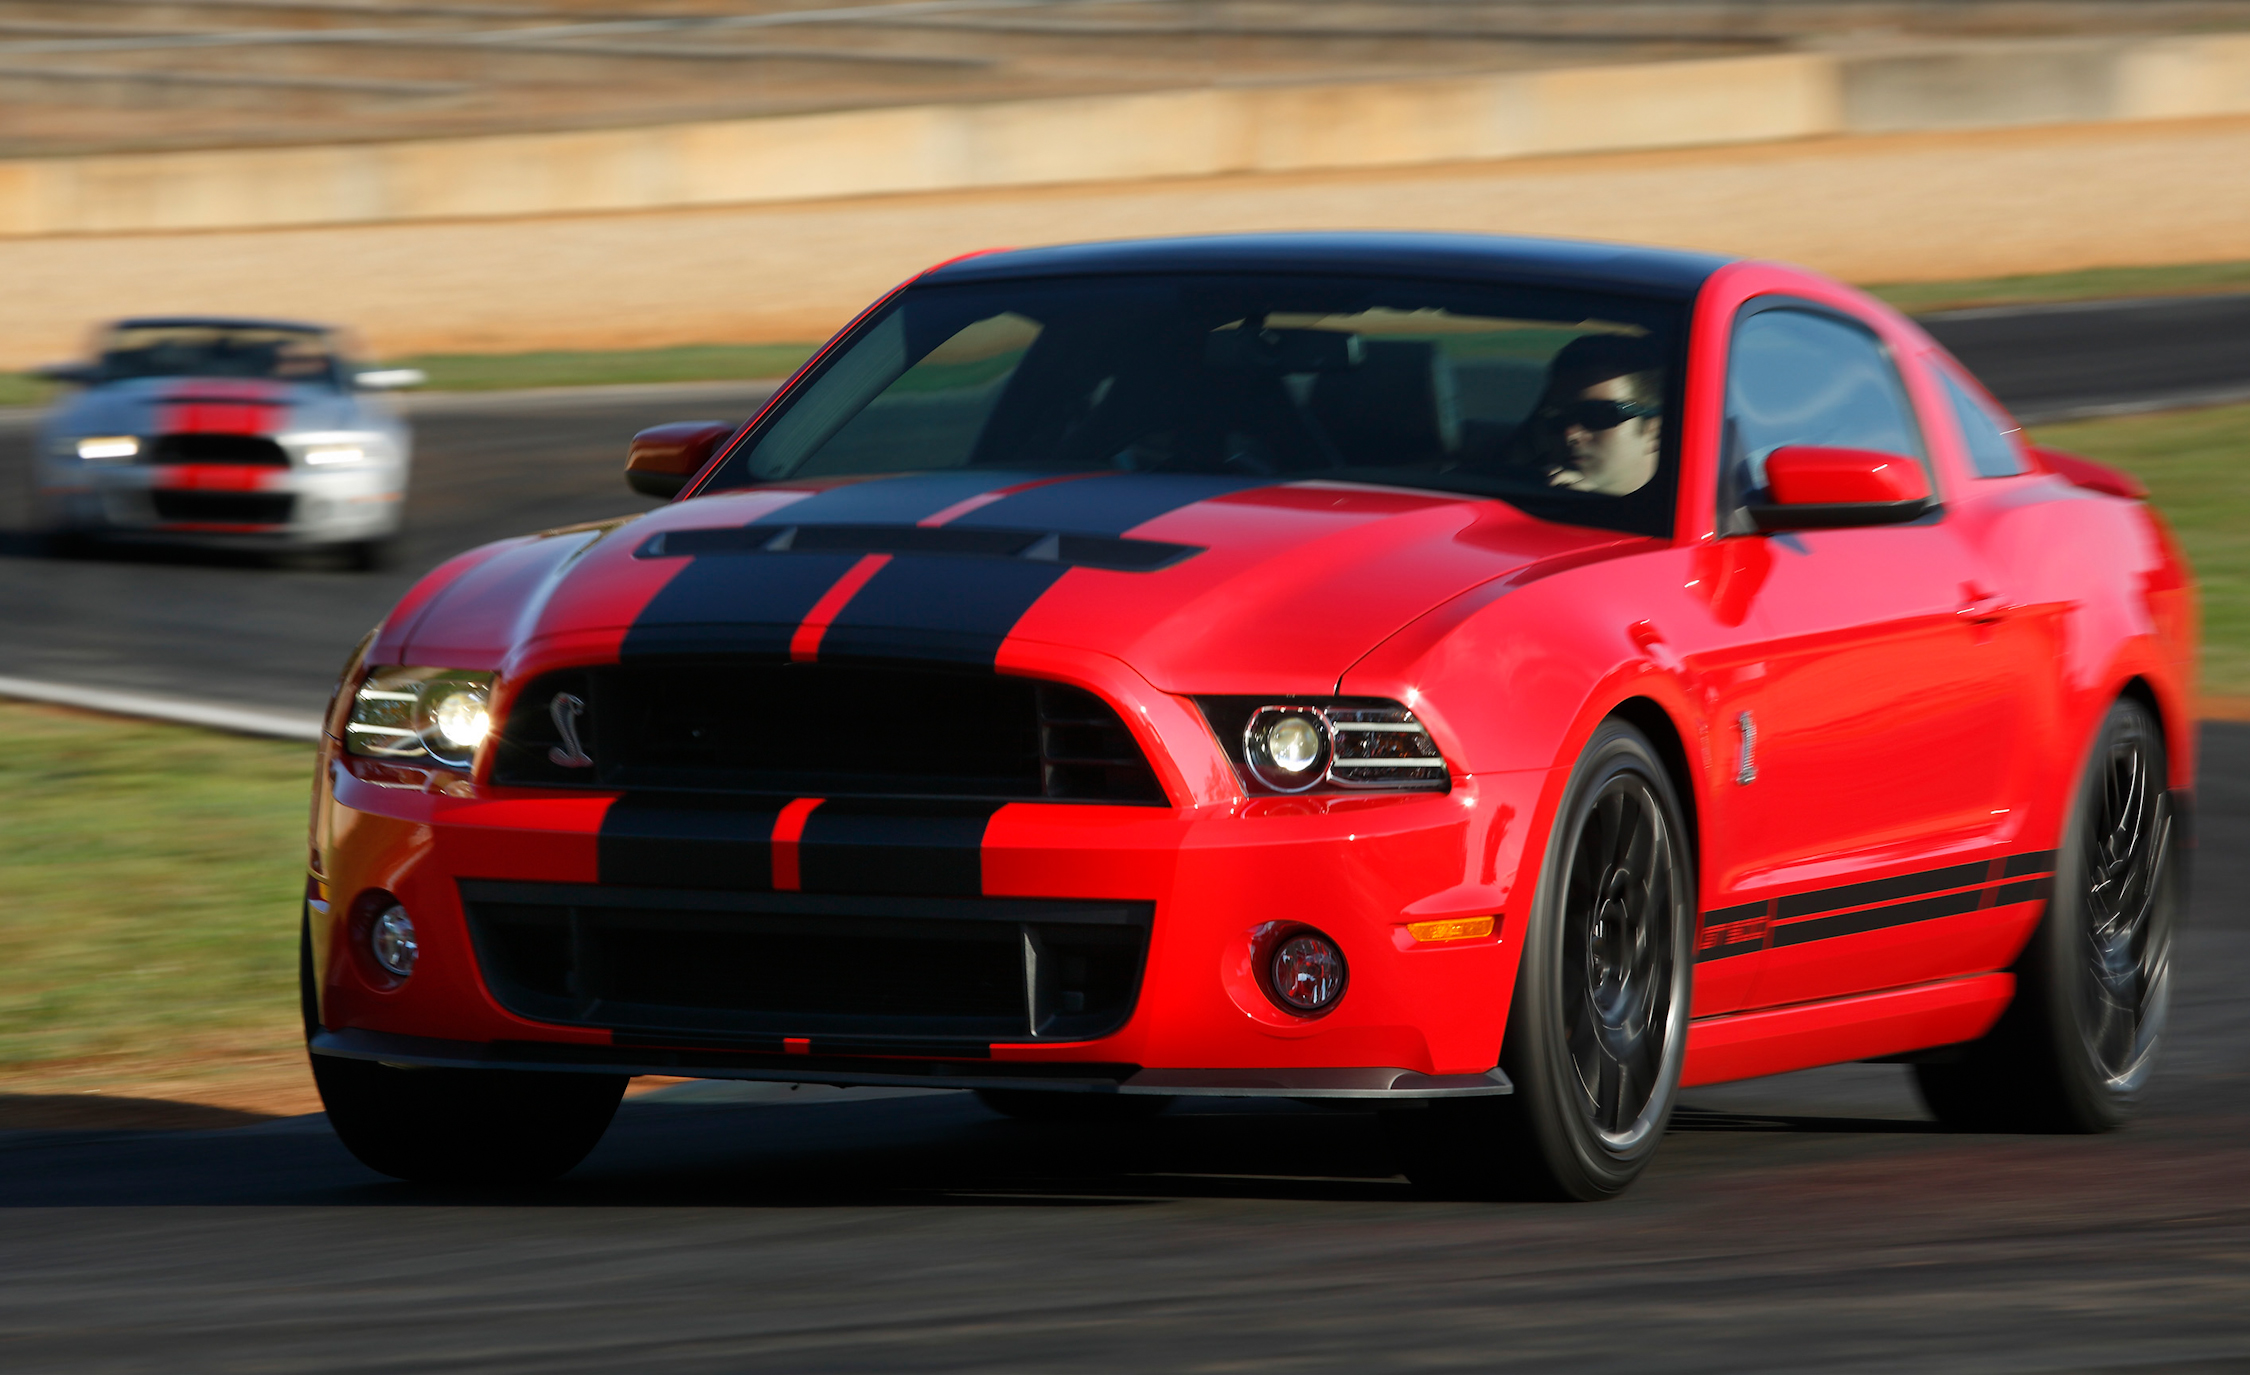 2013 Ford Mustang Shelby GT500 Red Test Drive Circuit (Photo 32 of 47)